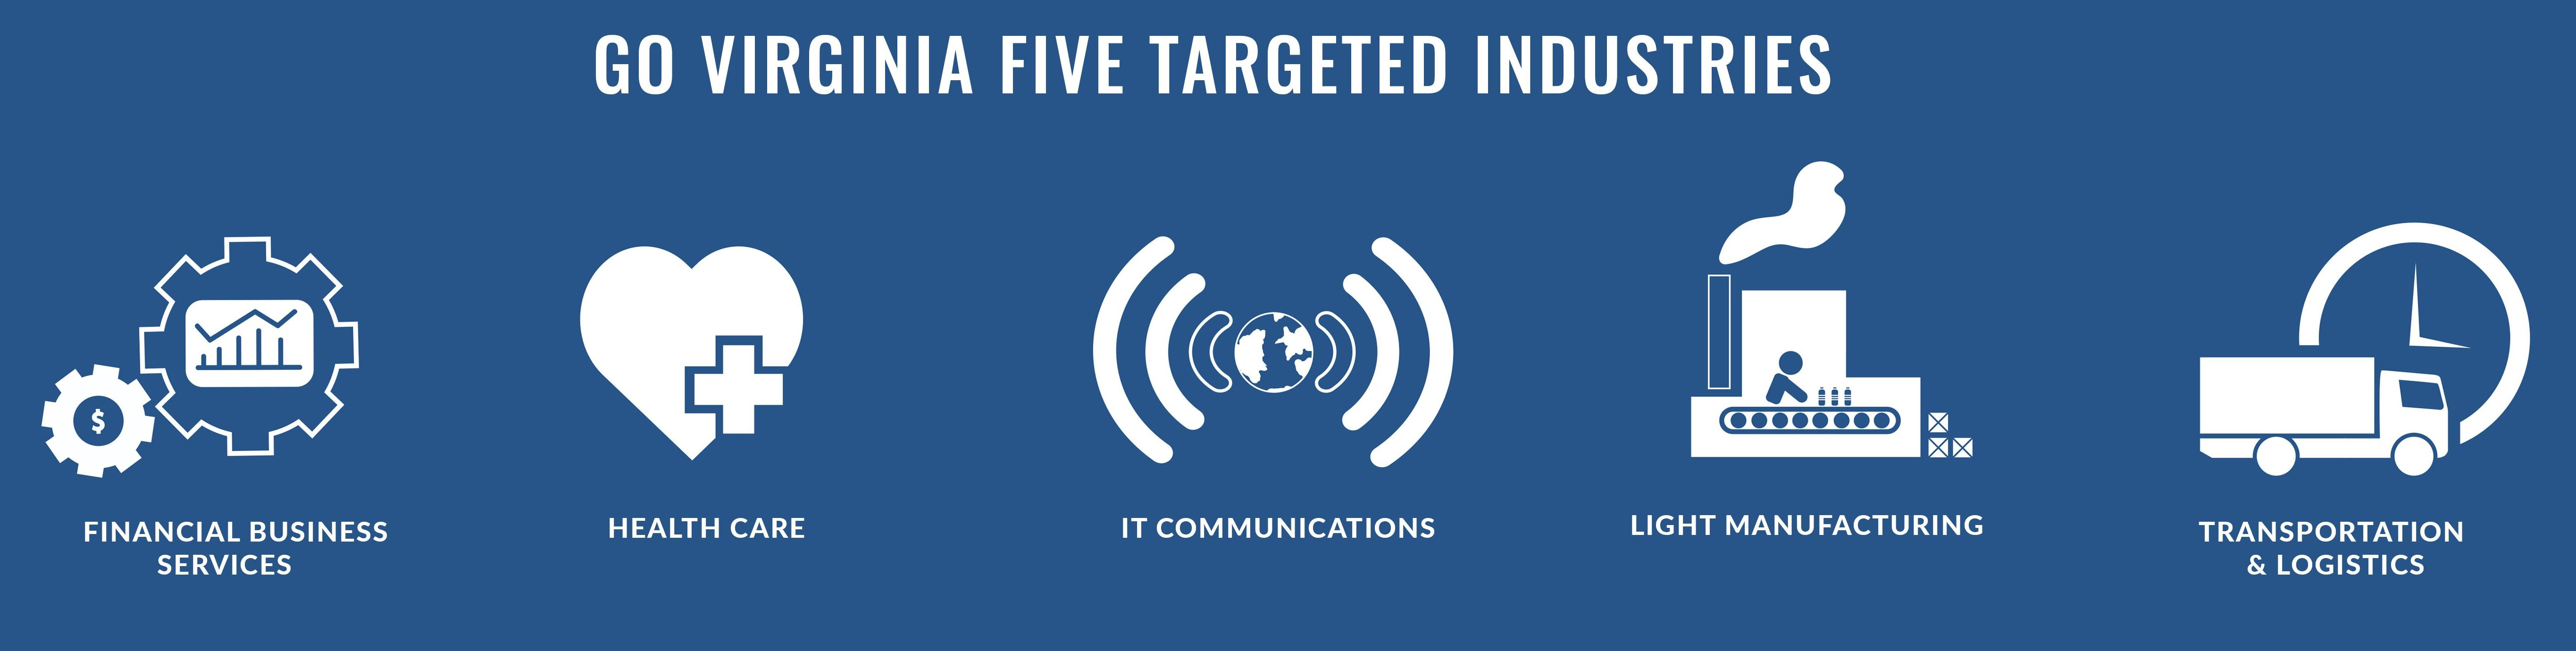 These are the 5 targeted industry clusters that GO-VIrginia associates with, those being Financial Business Services, Health care, IT communications, Light manufacturing and Transportation and logistics